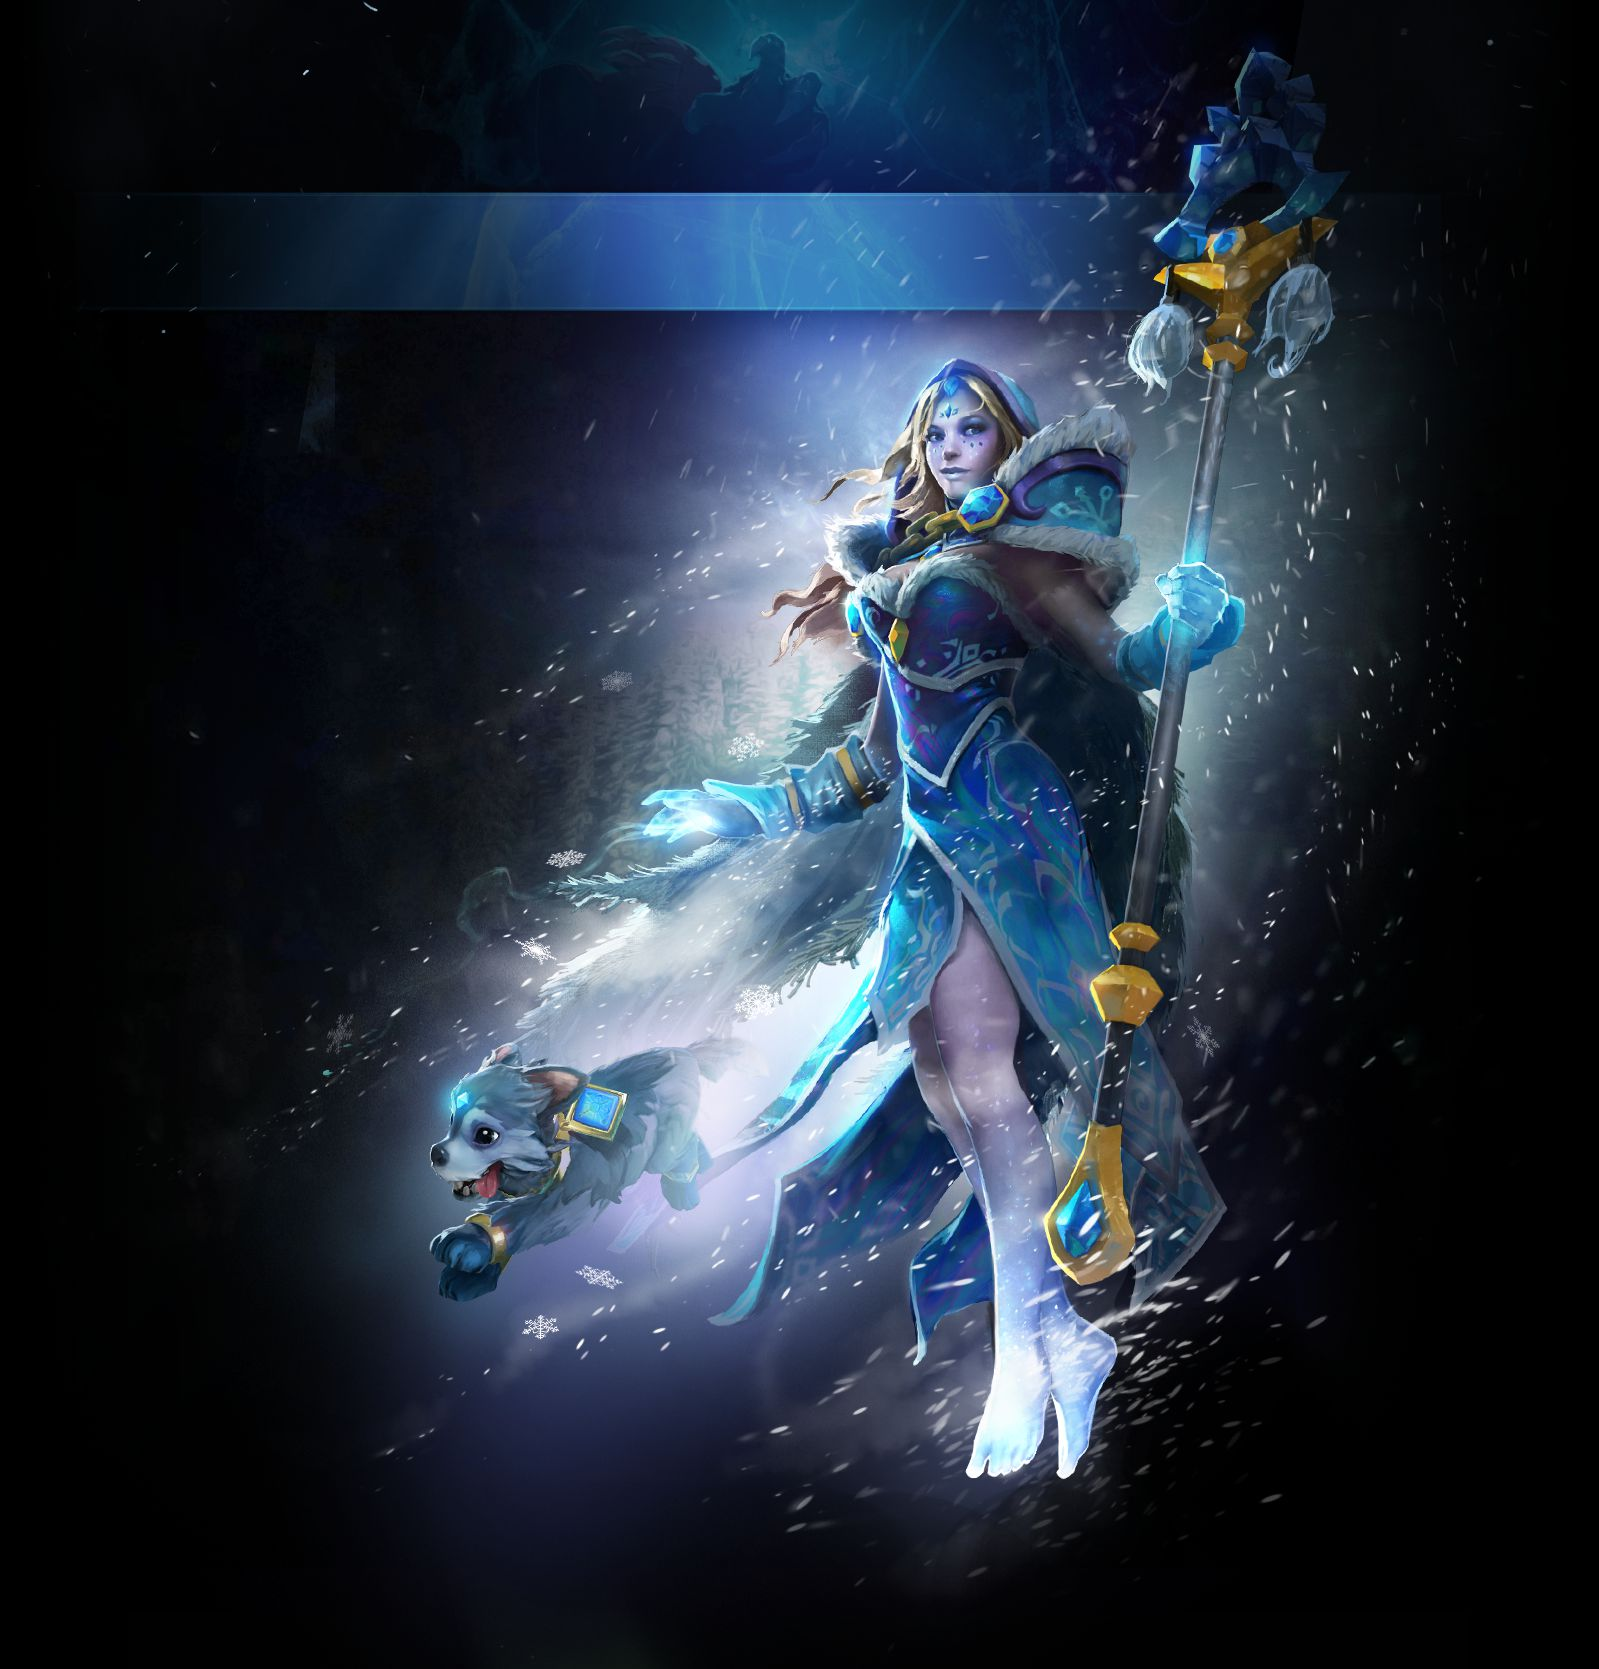 Can Someone Make An Hd Wallpaper Out Of This Please Dota2